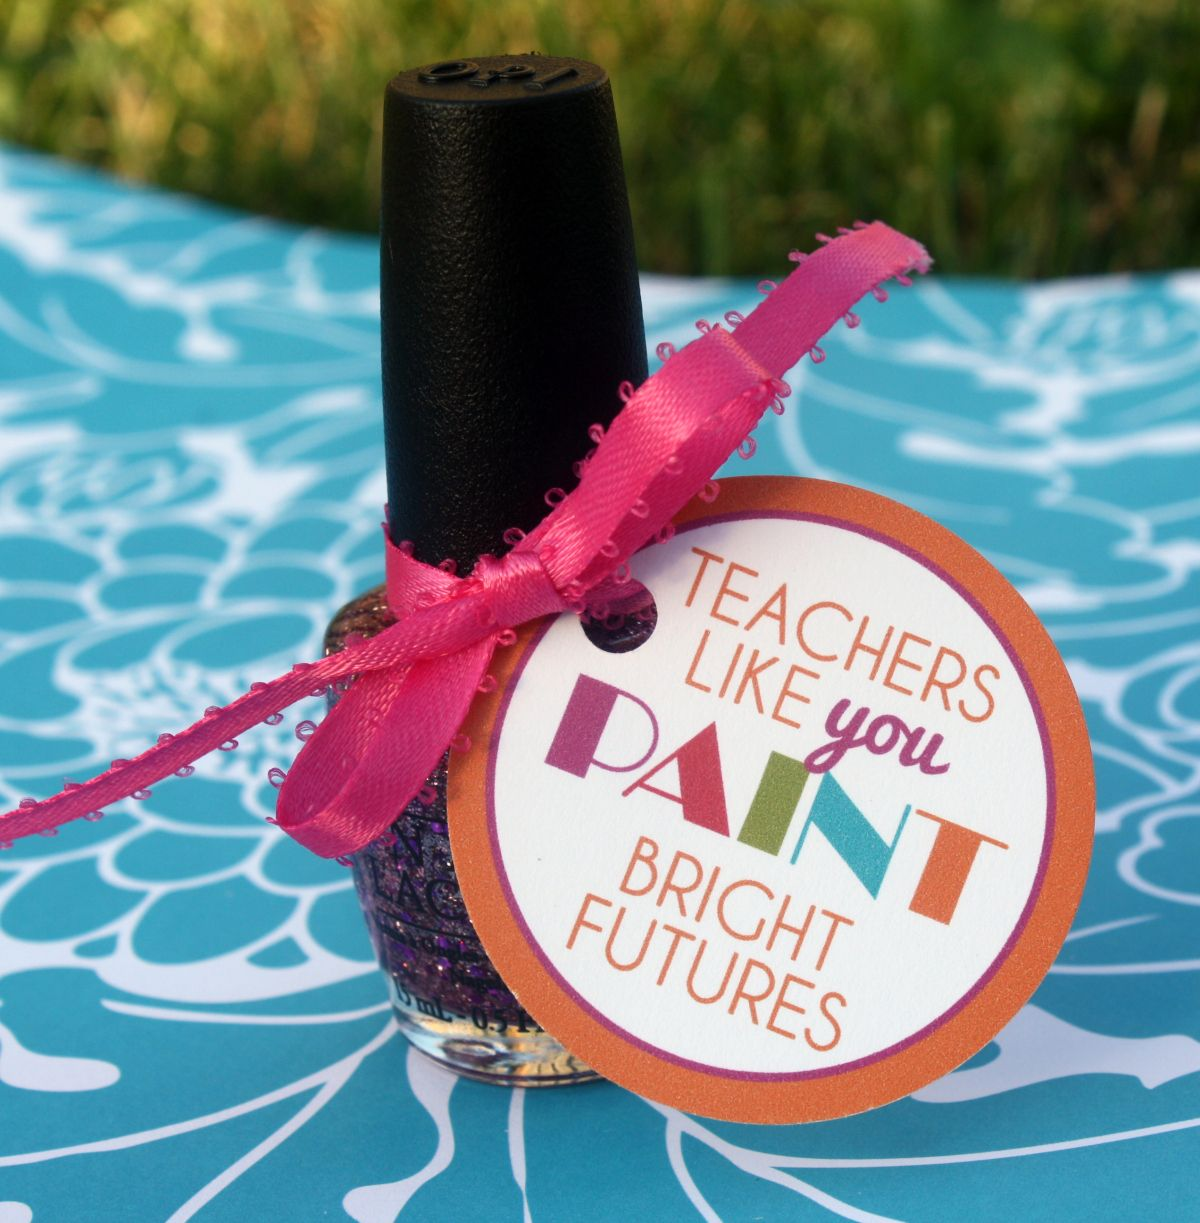 Teachers like you paint bright futures. Teacher Appreciation gift